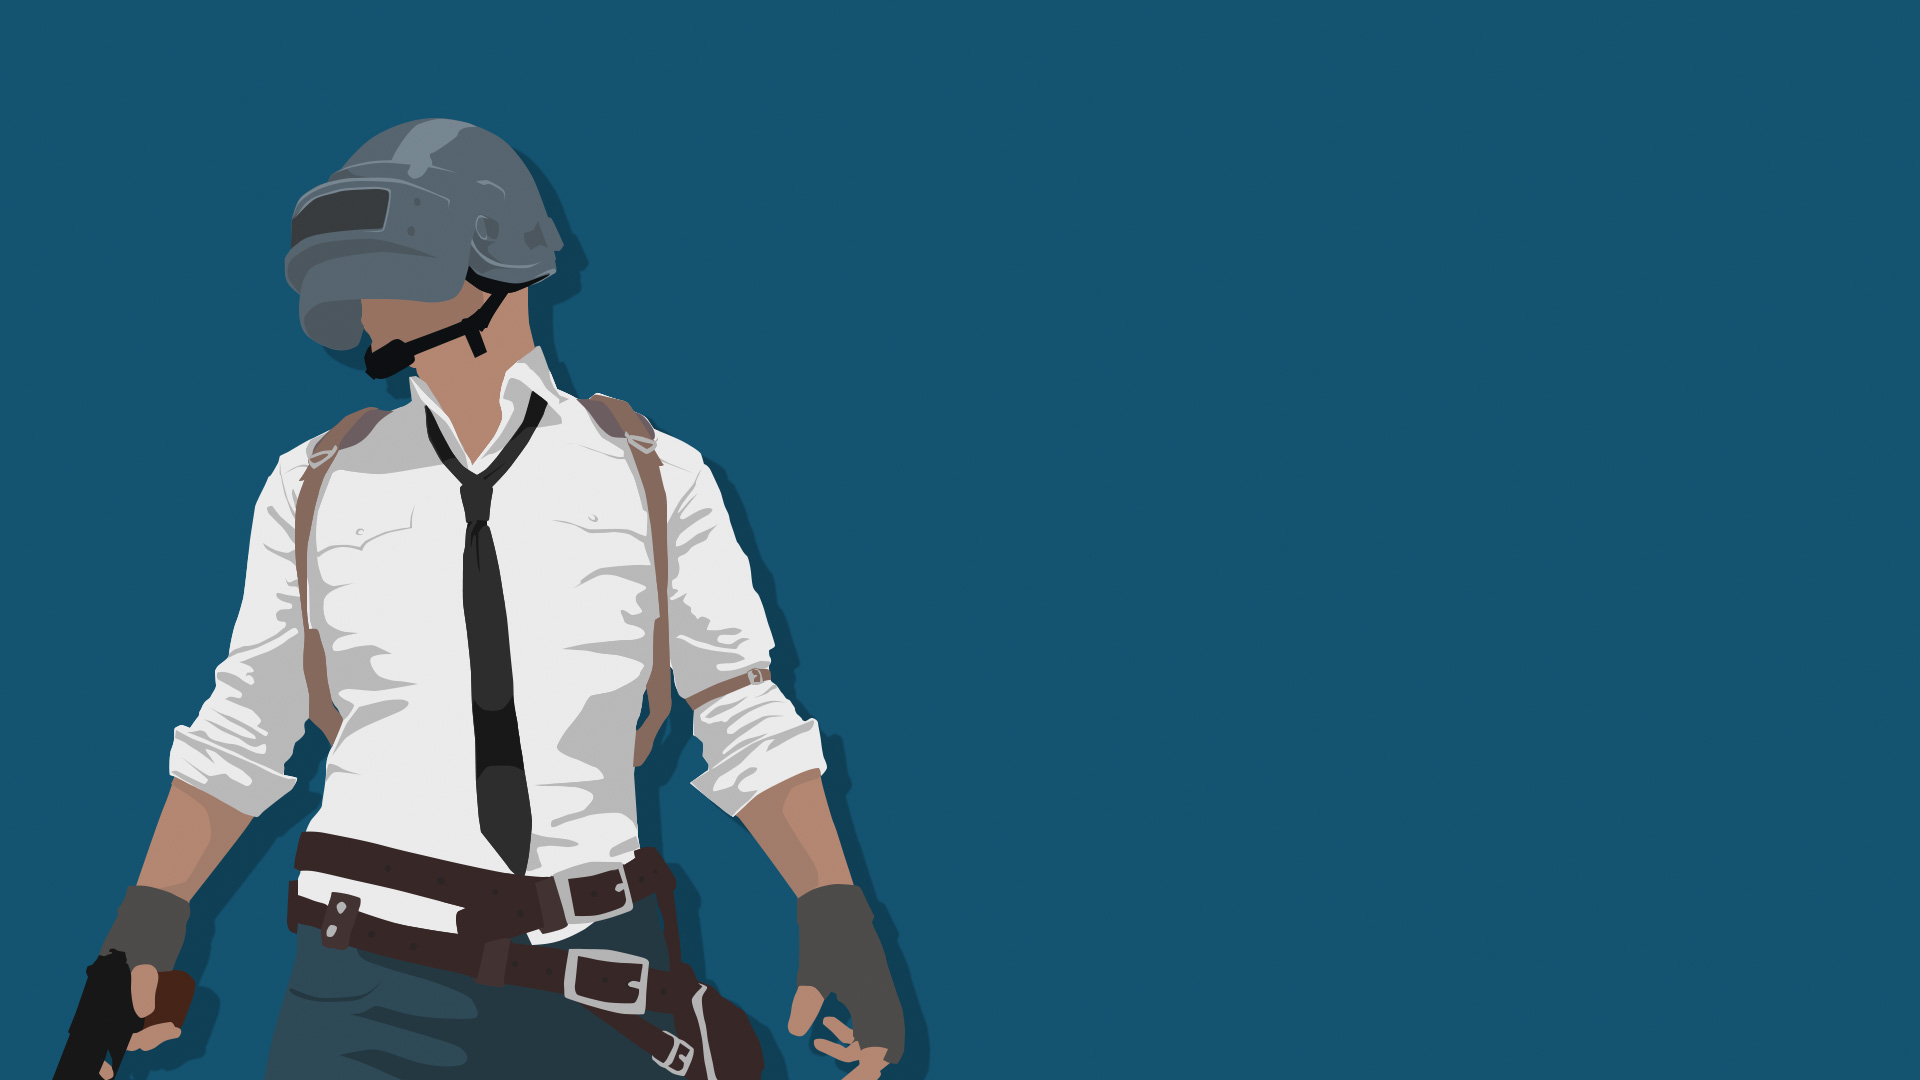 Pubg Wallpaper Black: Playerunknowns Battlegrounds Minimalism, HD Games, 4k